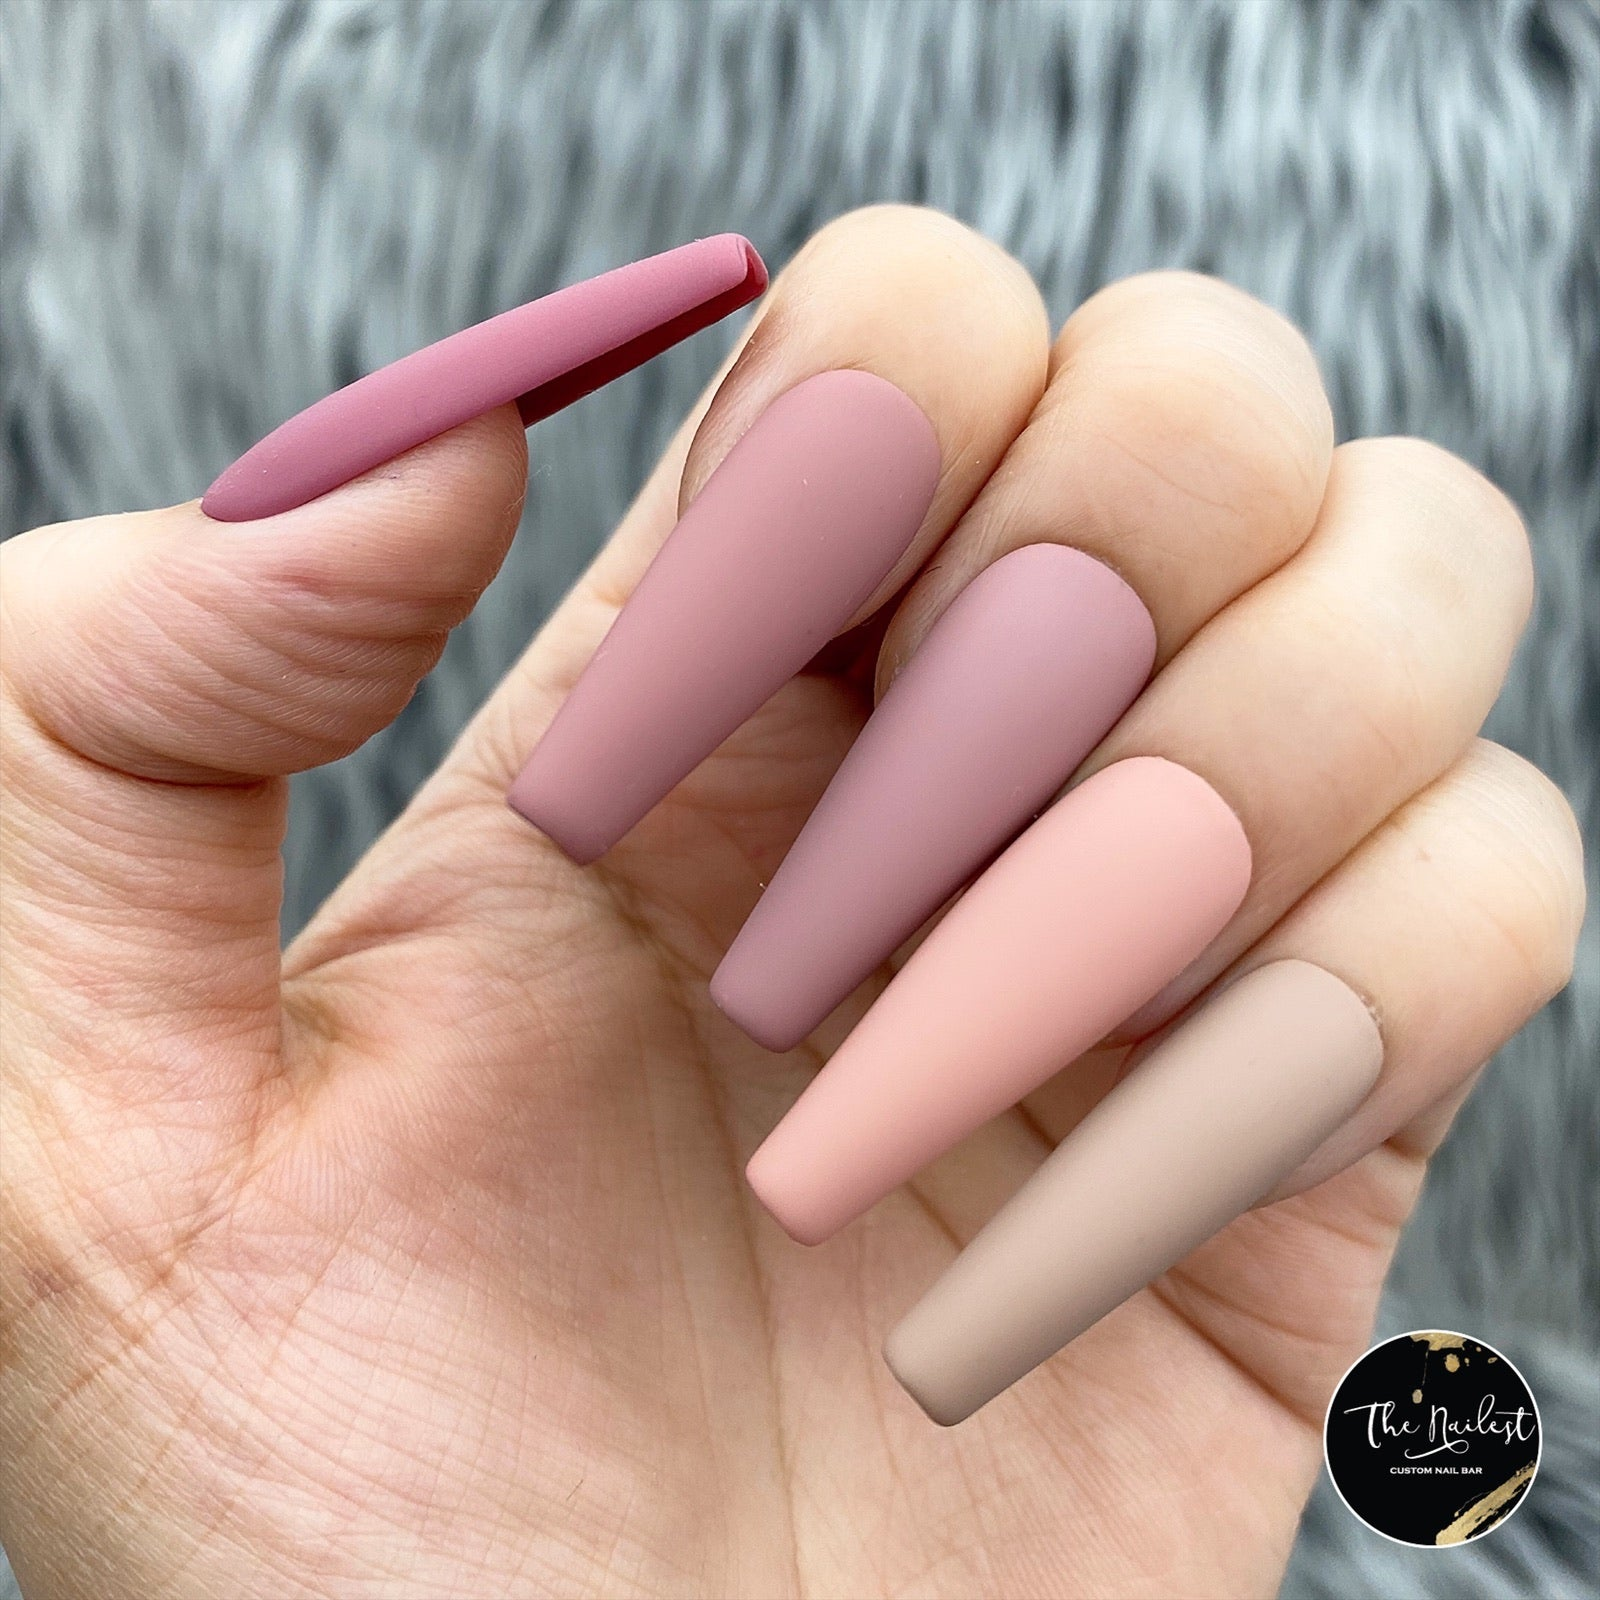 HANDMADE- WARM NUDE MATTE PREMIUM QUALITY MULTI PLAYER OMBRE COLOR BLOCK